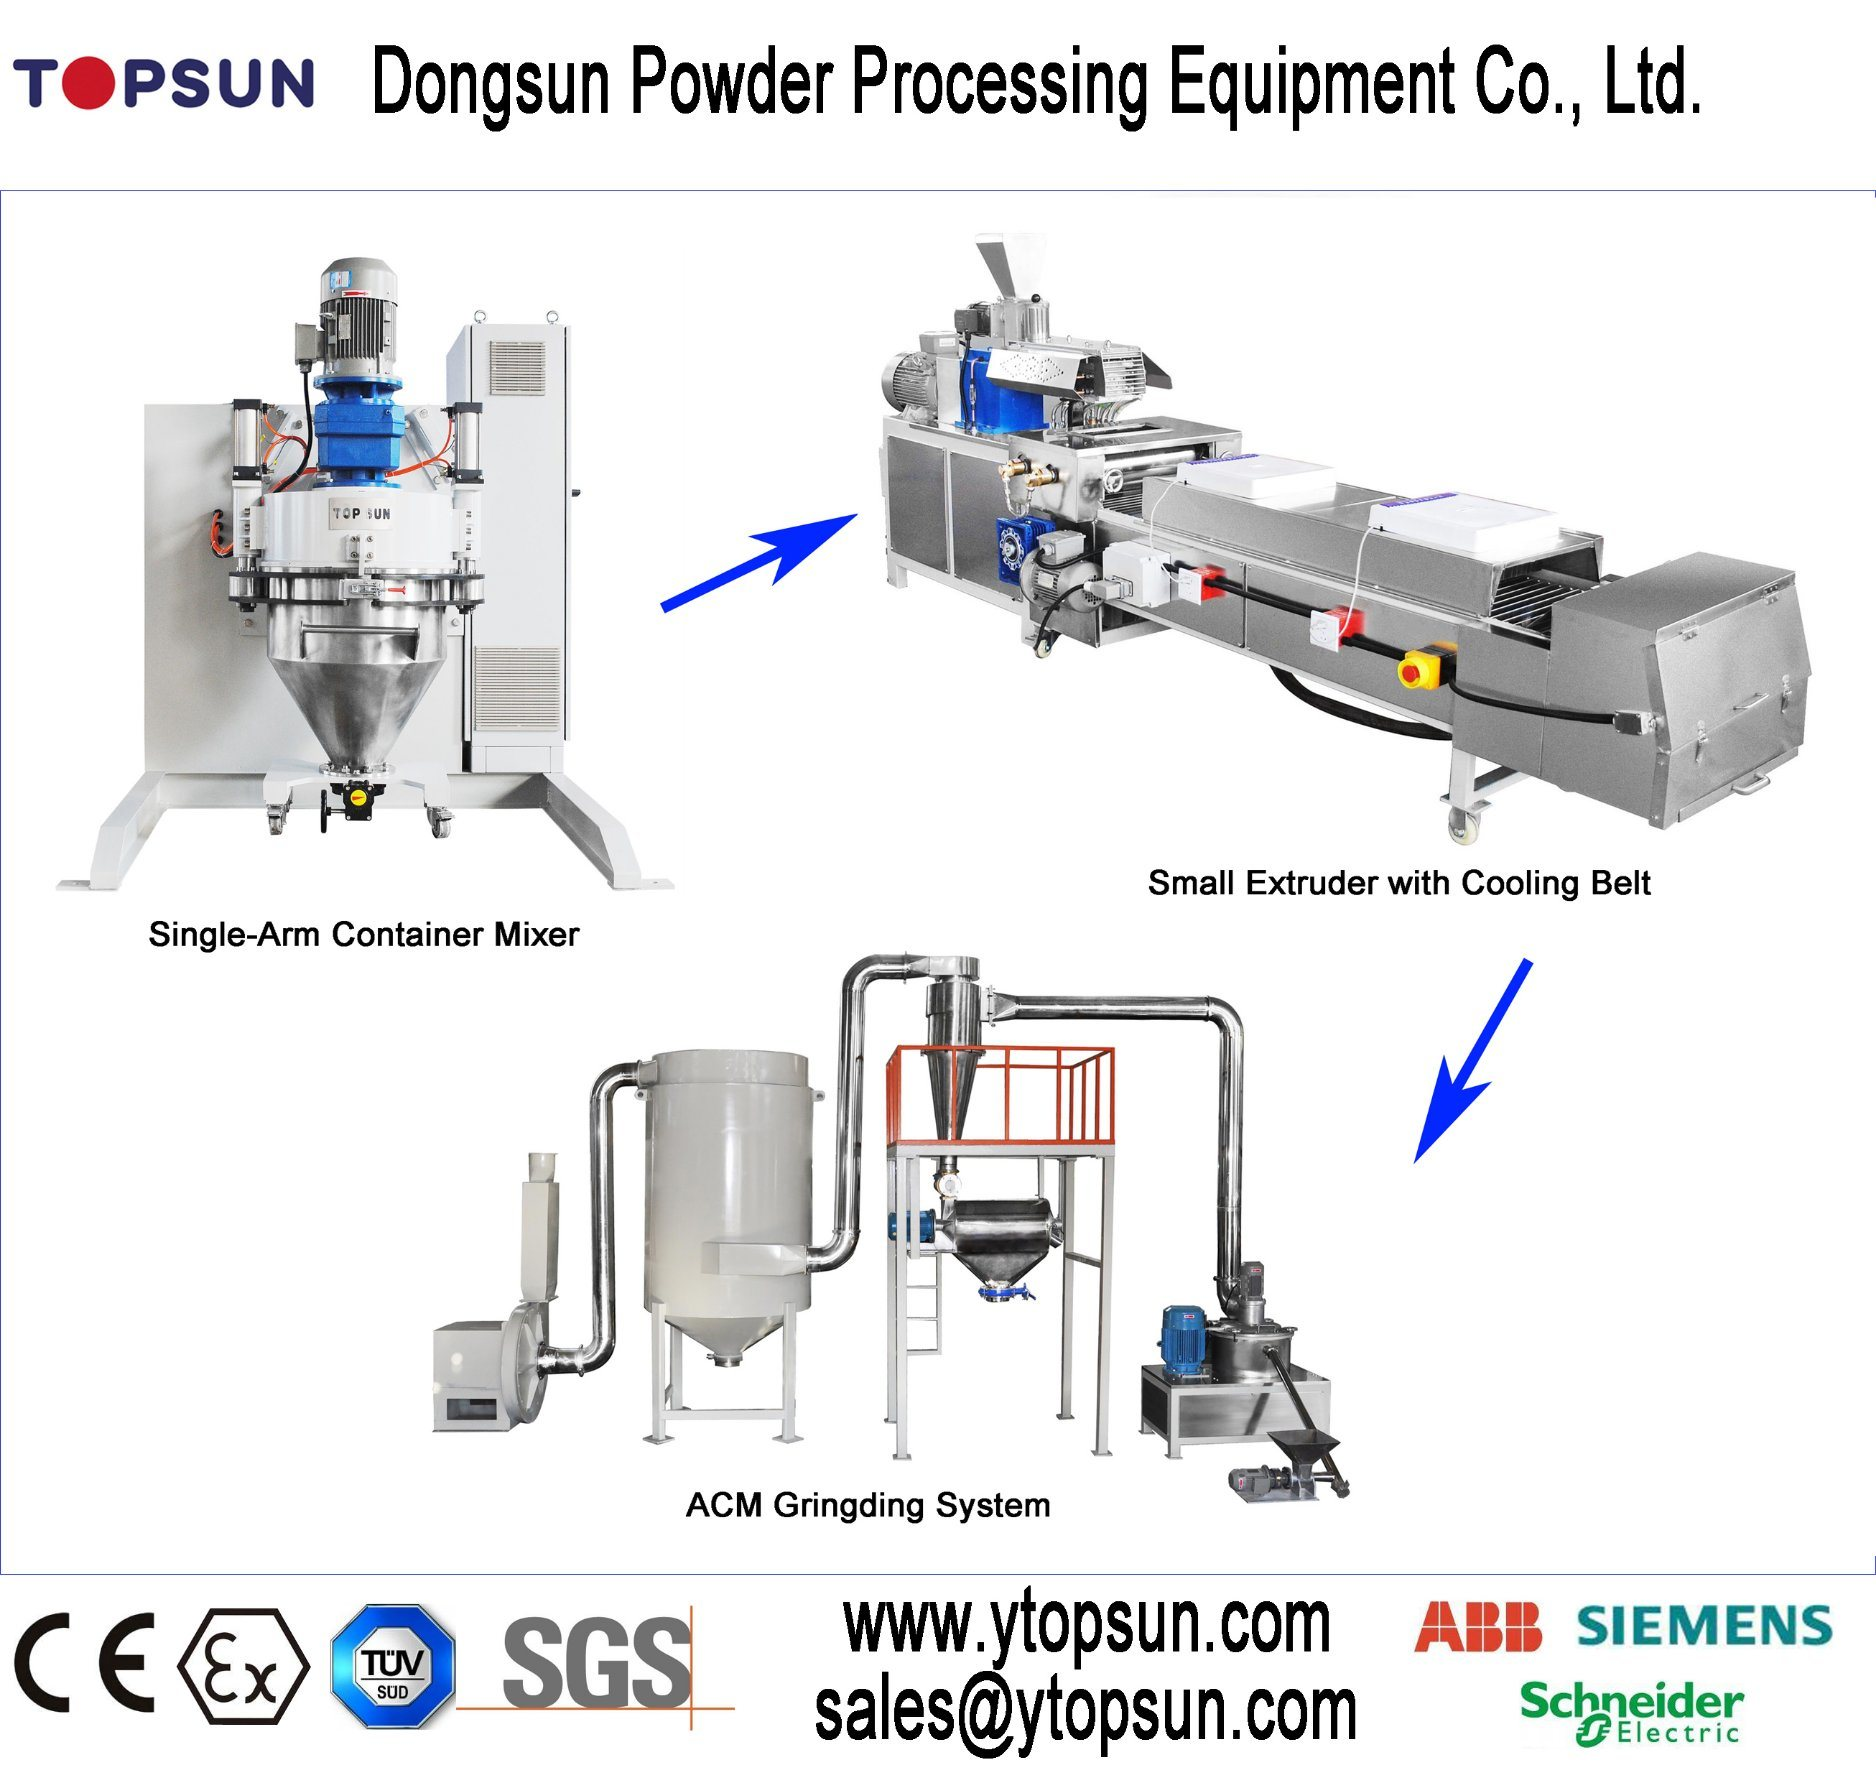 High-End Powder Coating Production Line